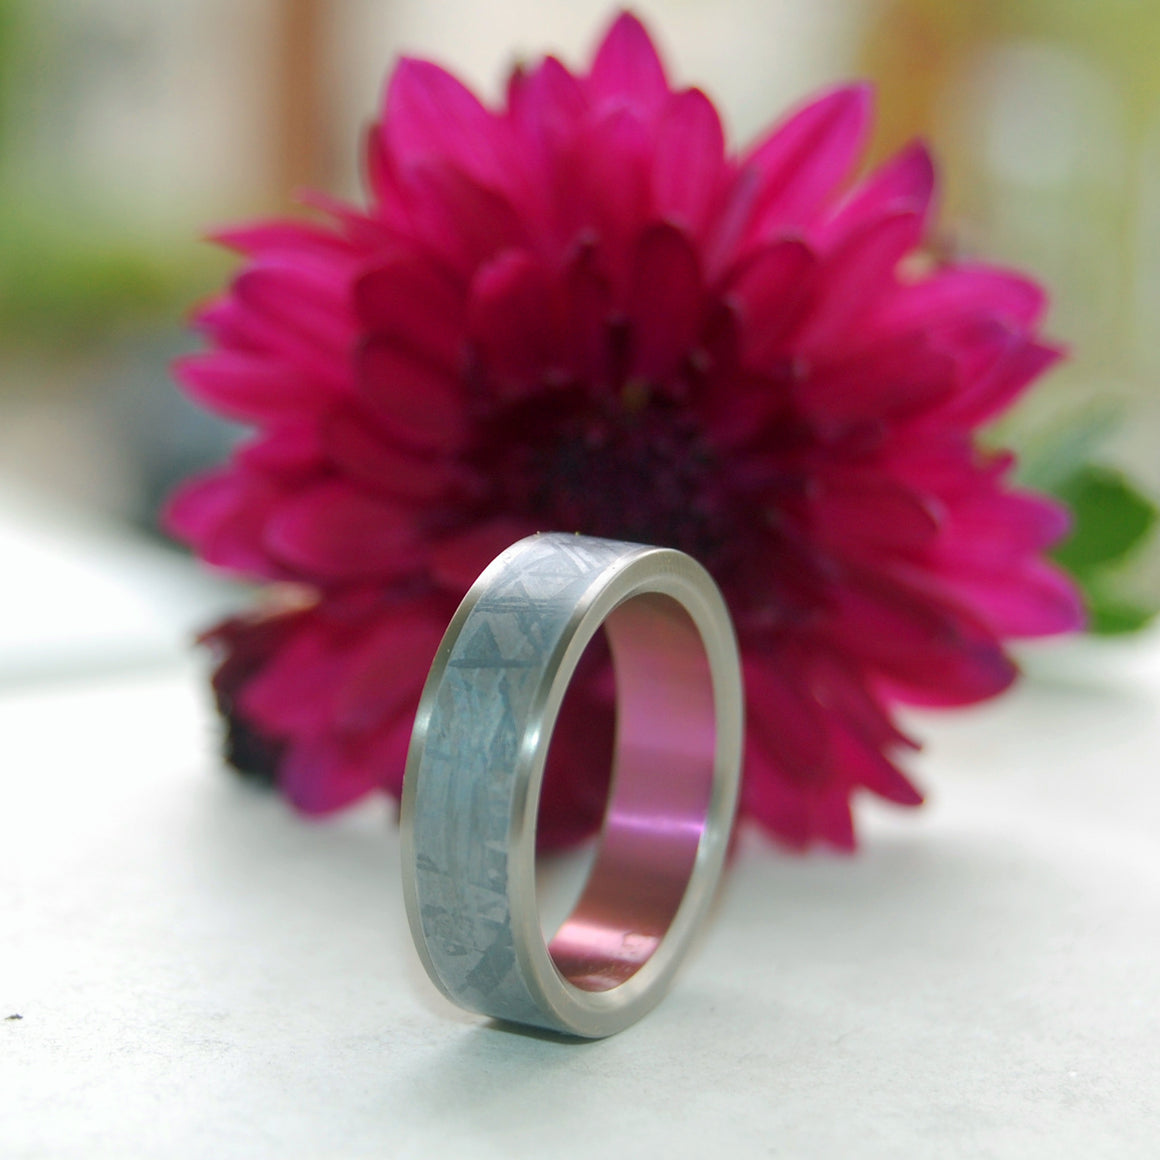 HEAVY HITTER | Meteorite & Pink Anodized Titanium Rings, Unique Men's Wedding Bands - Minter and Richter Designs